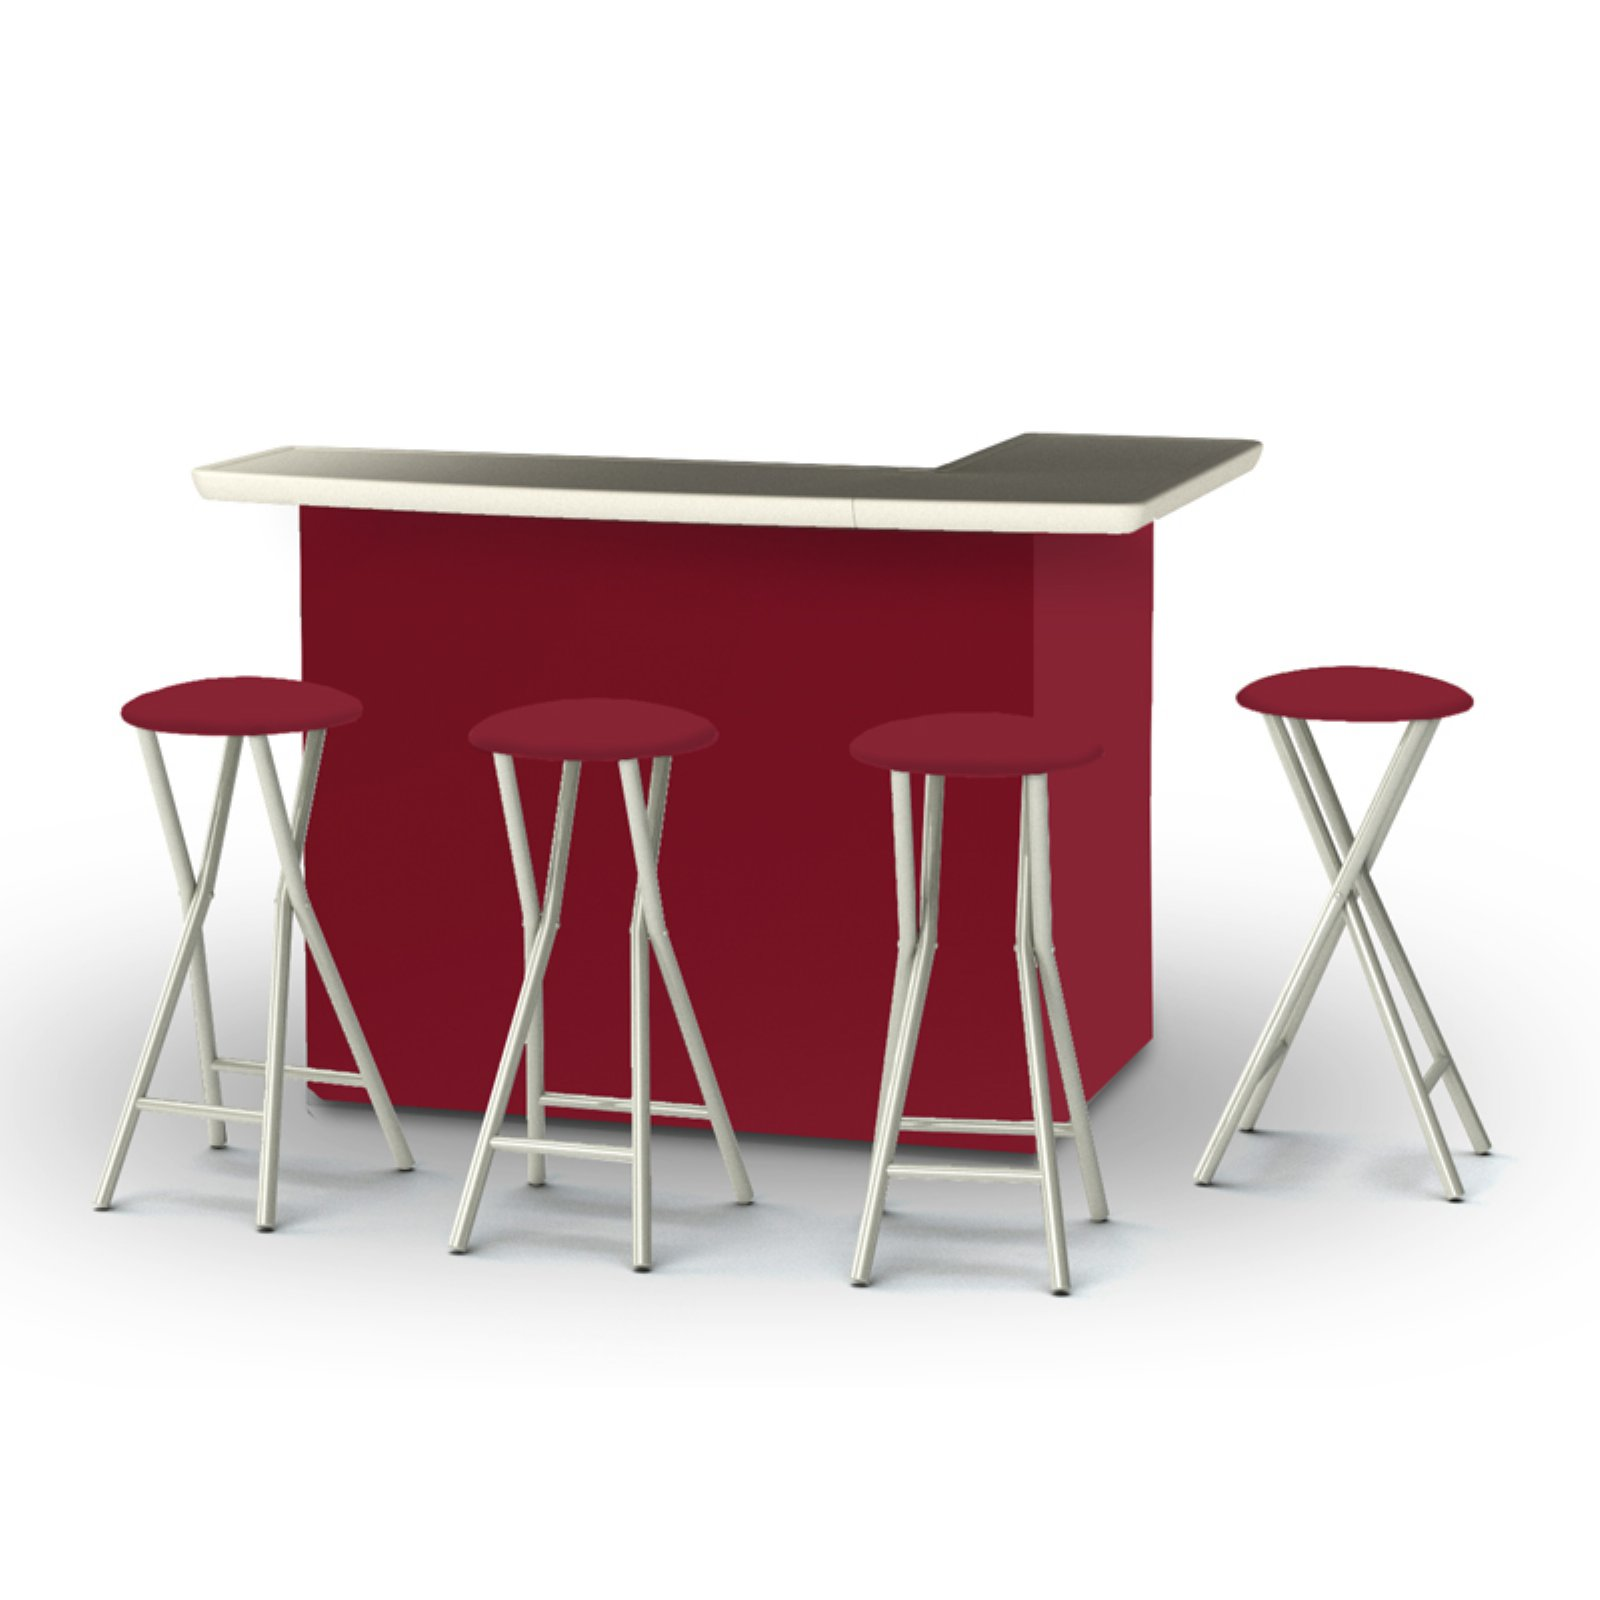 Best of Times Solid Patio Bar and Tailgating Center with 4 Bar Stools